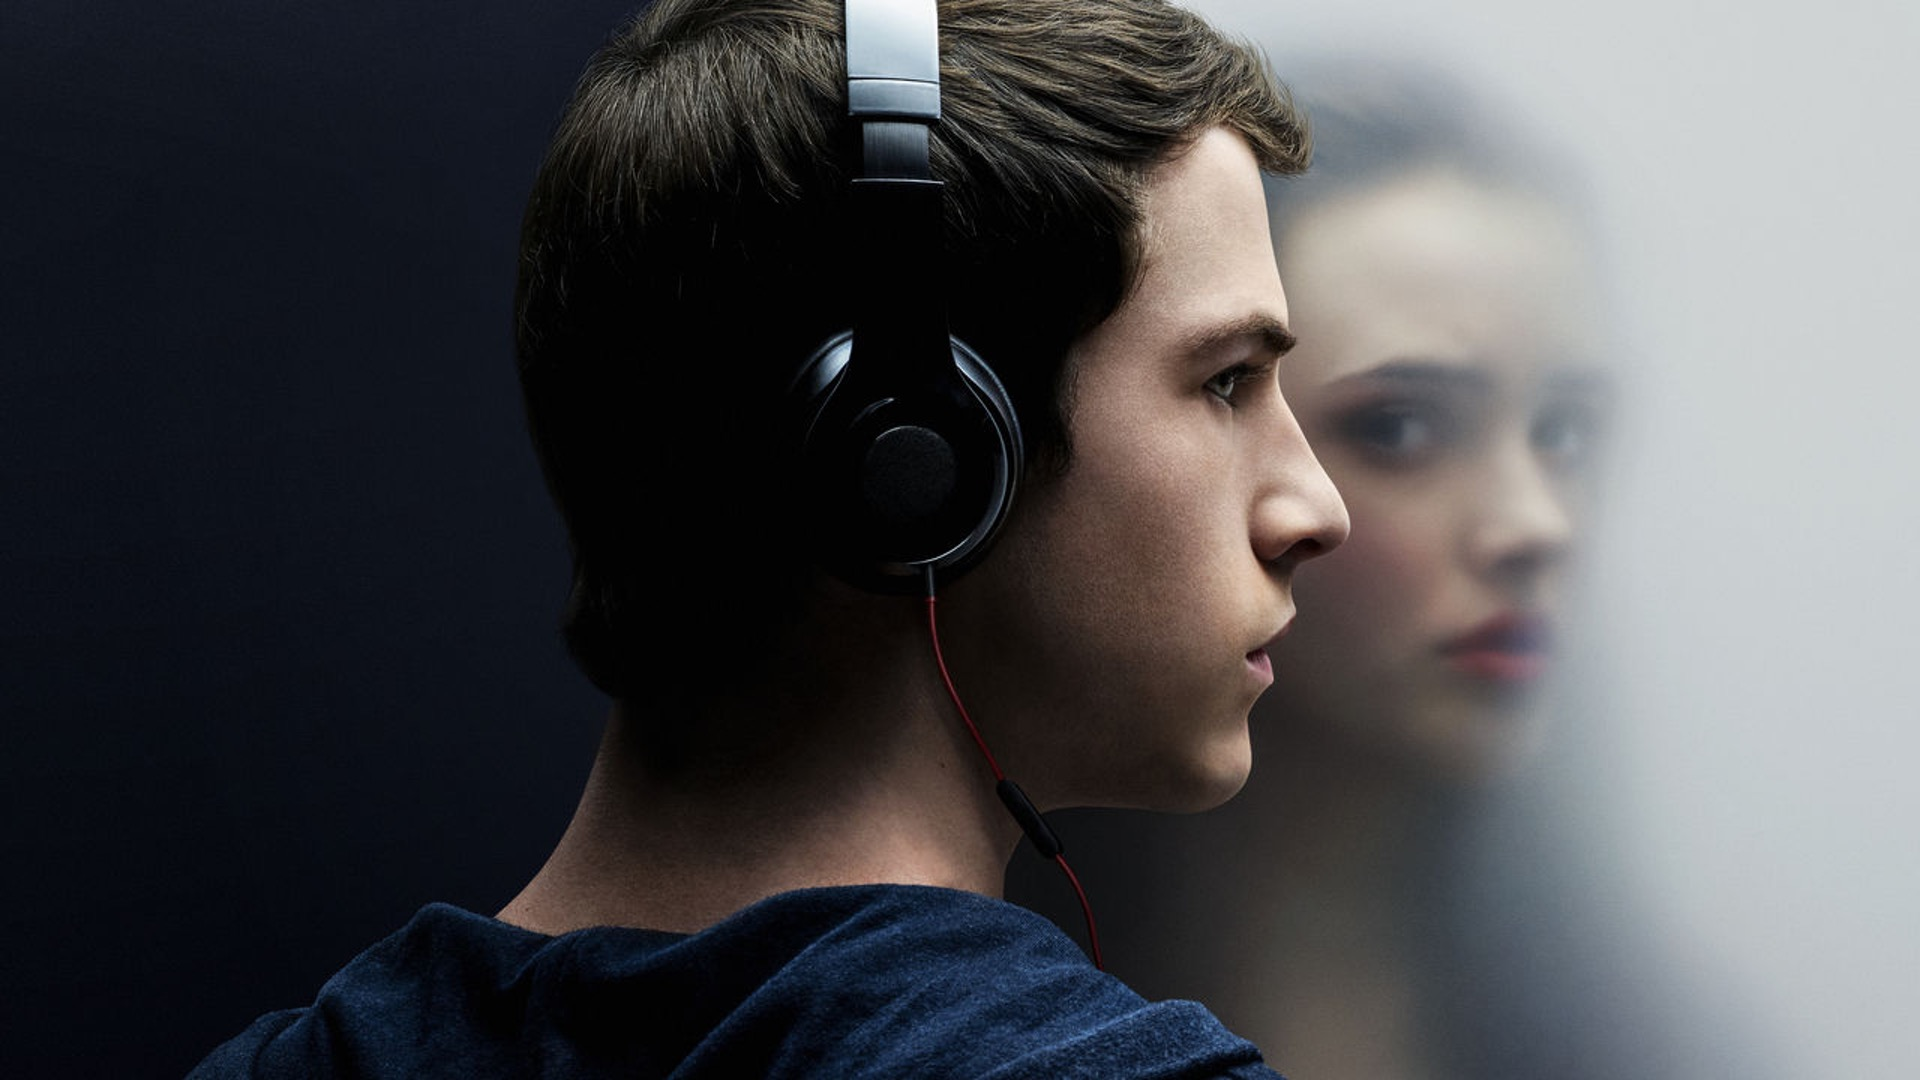 13 reasons why hd wallpaper background image 1920x1080 - 13 reasons why wallpaper hd ...